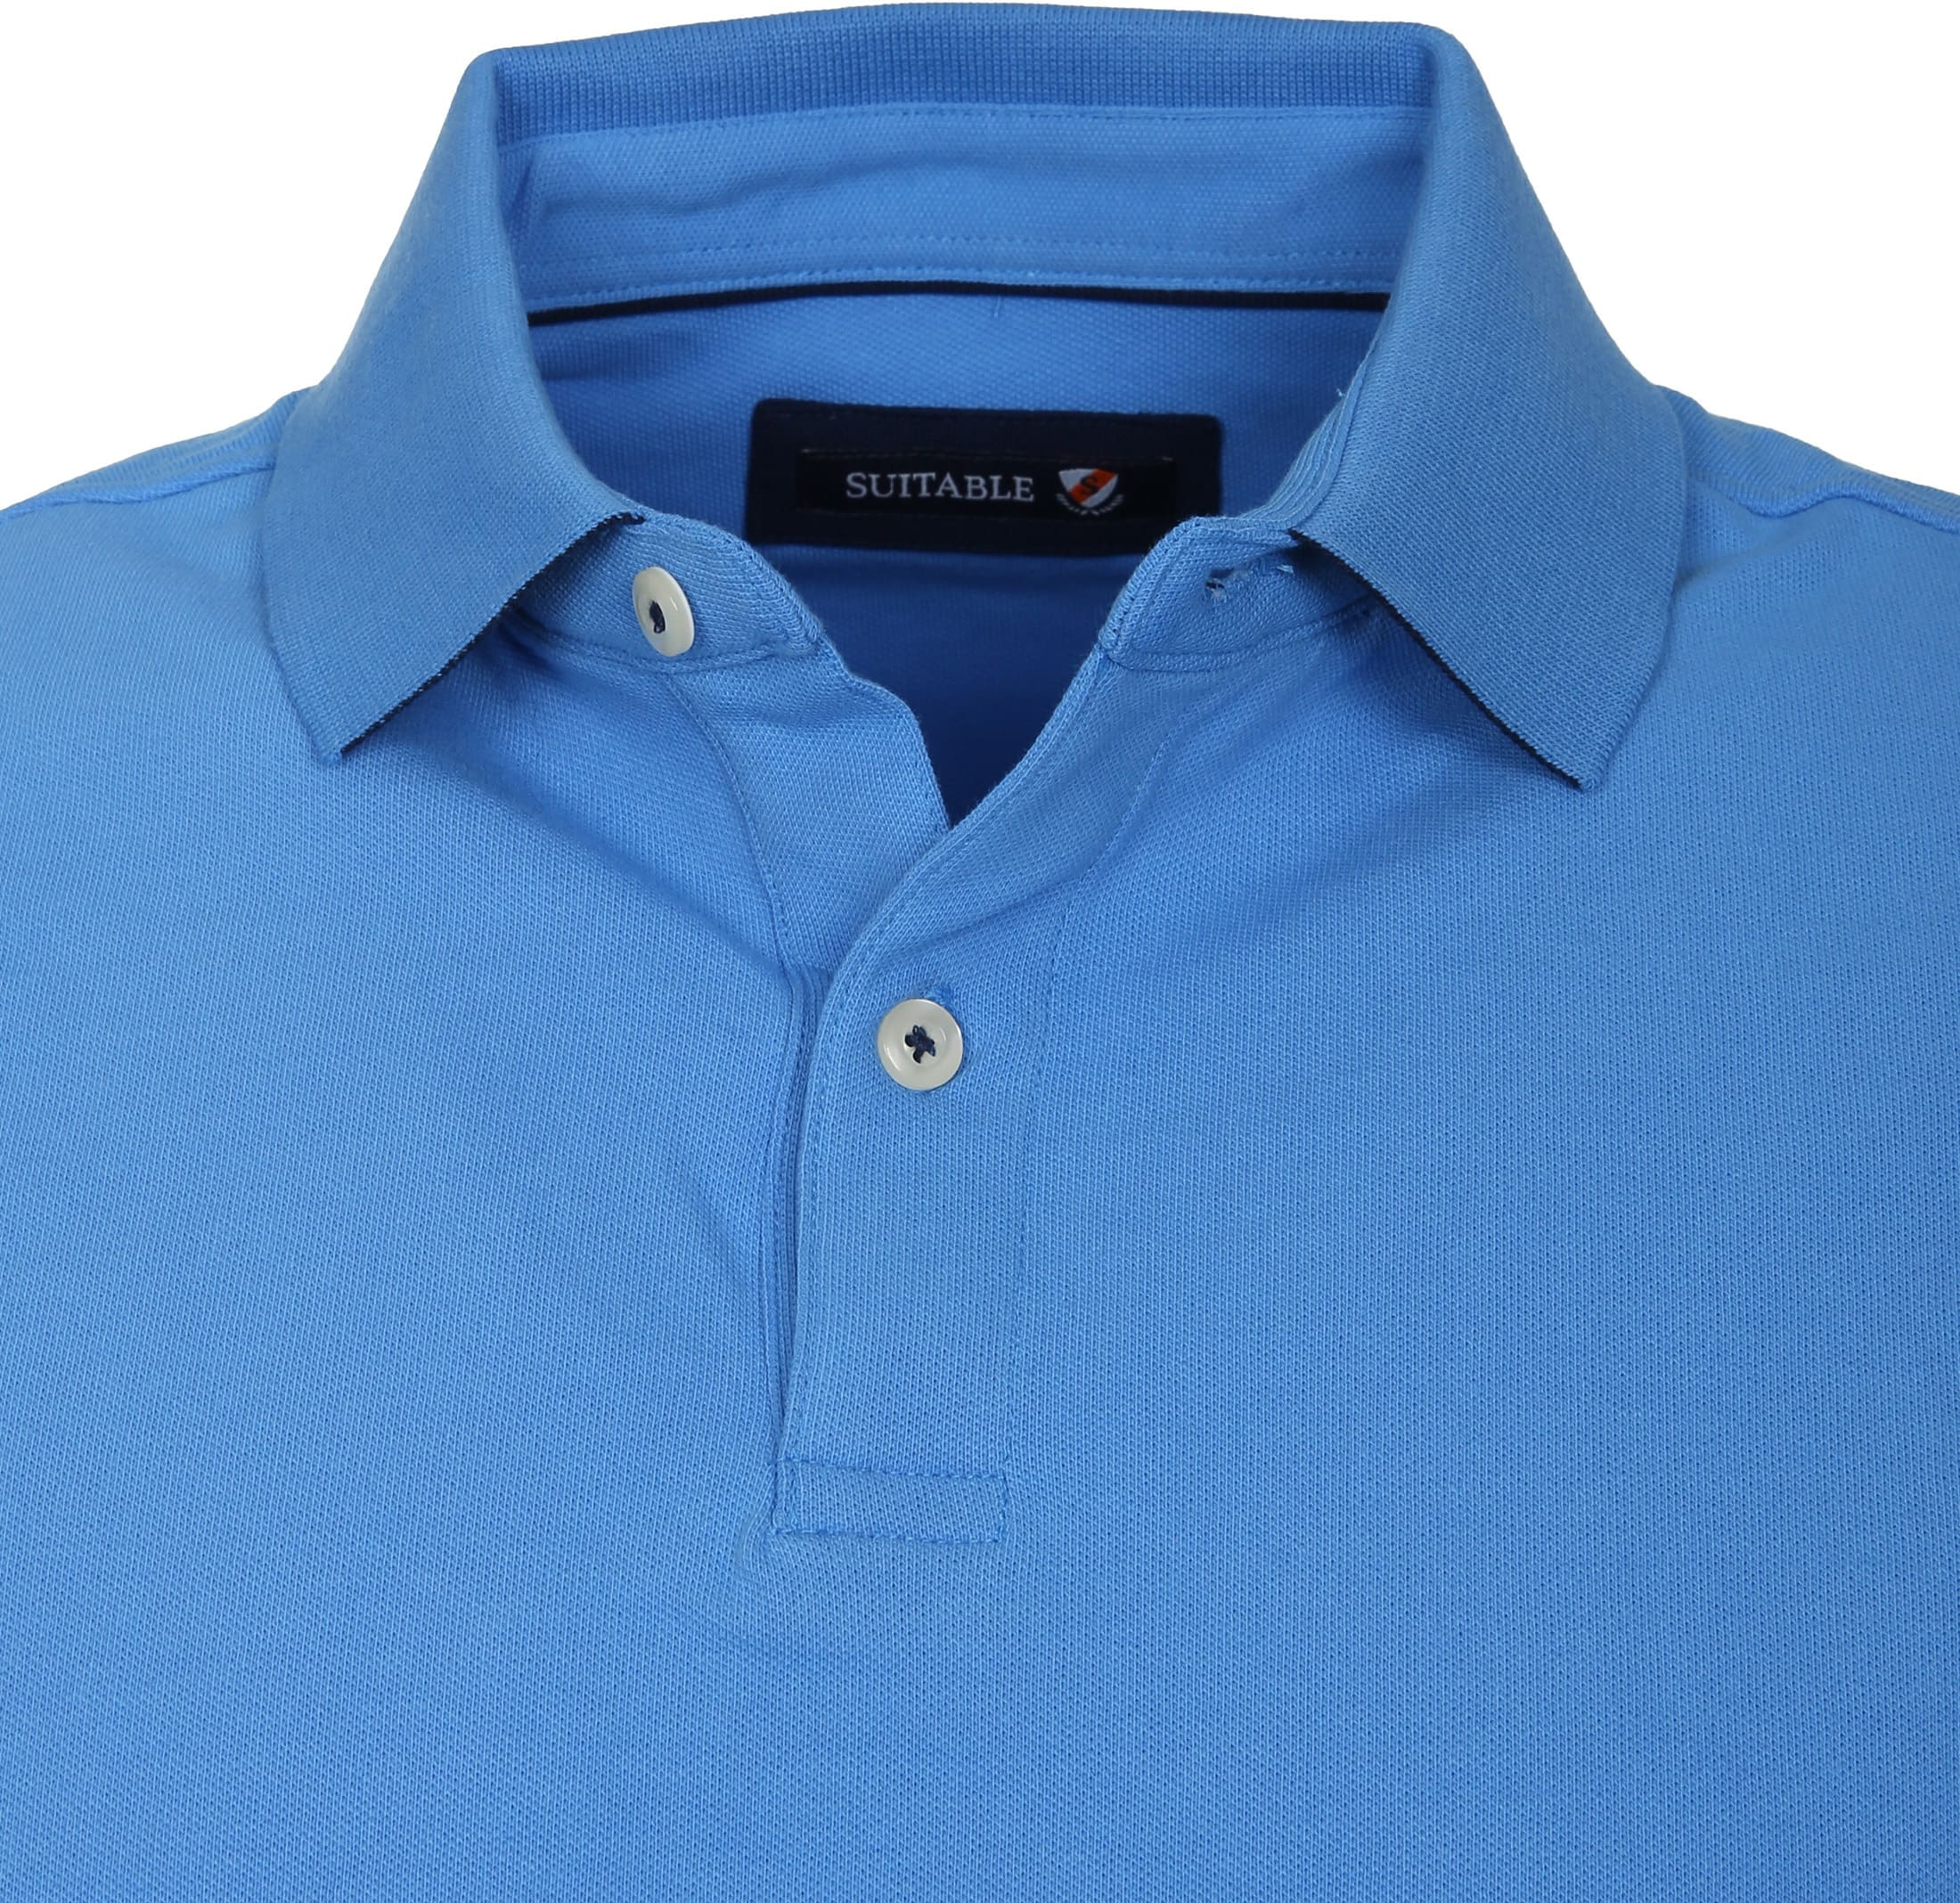 Suitable Polo Basic Blauw foto 1